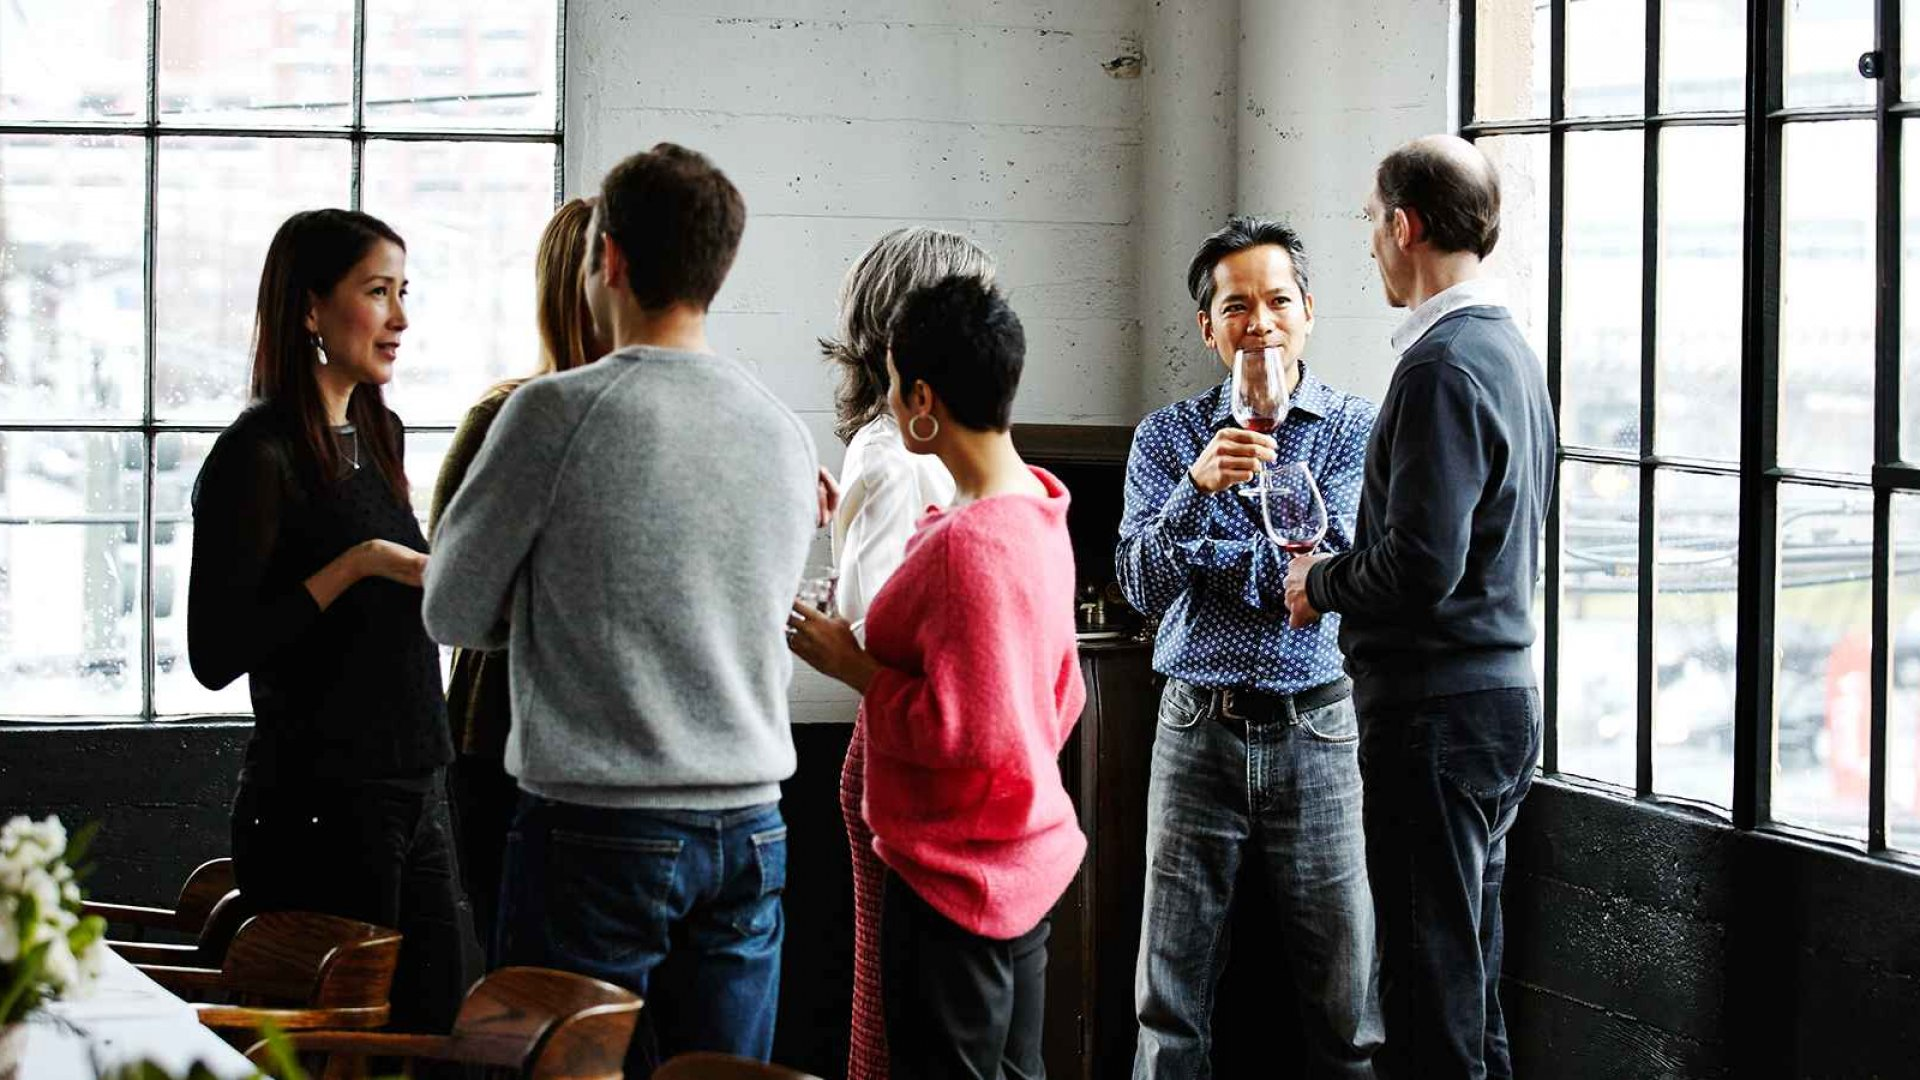 7 Ways to Avoid Making a Bad First Impression at Your Next Networking Event